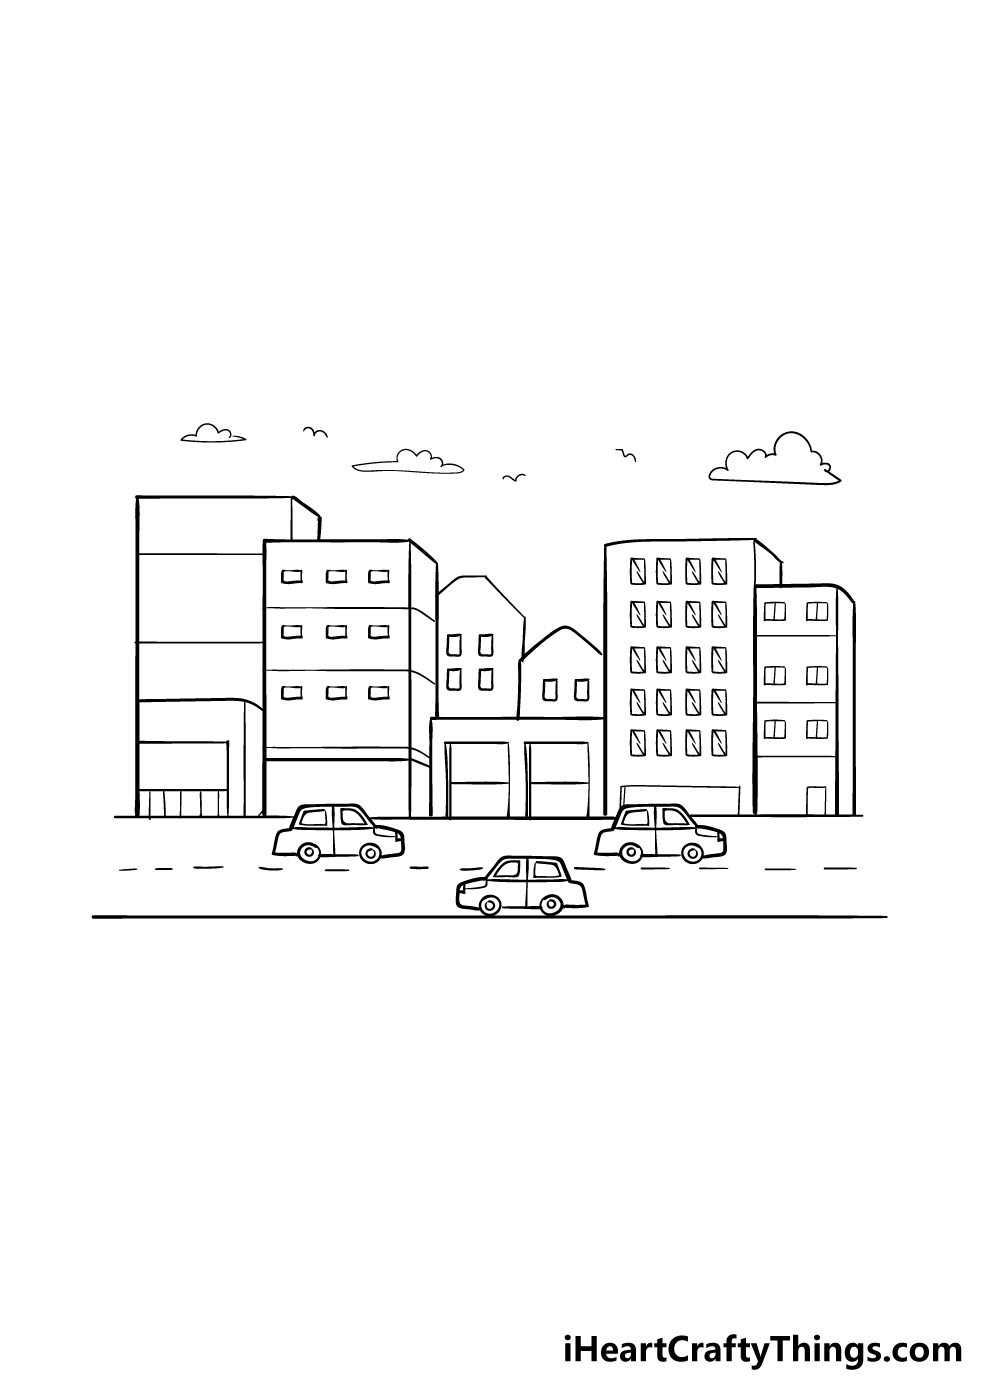 drawing a city step 7